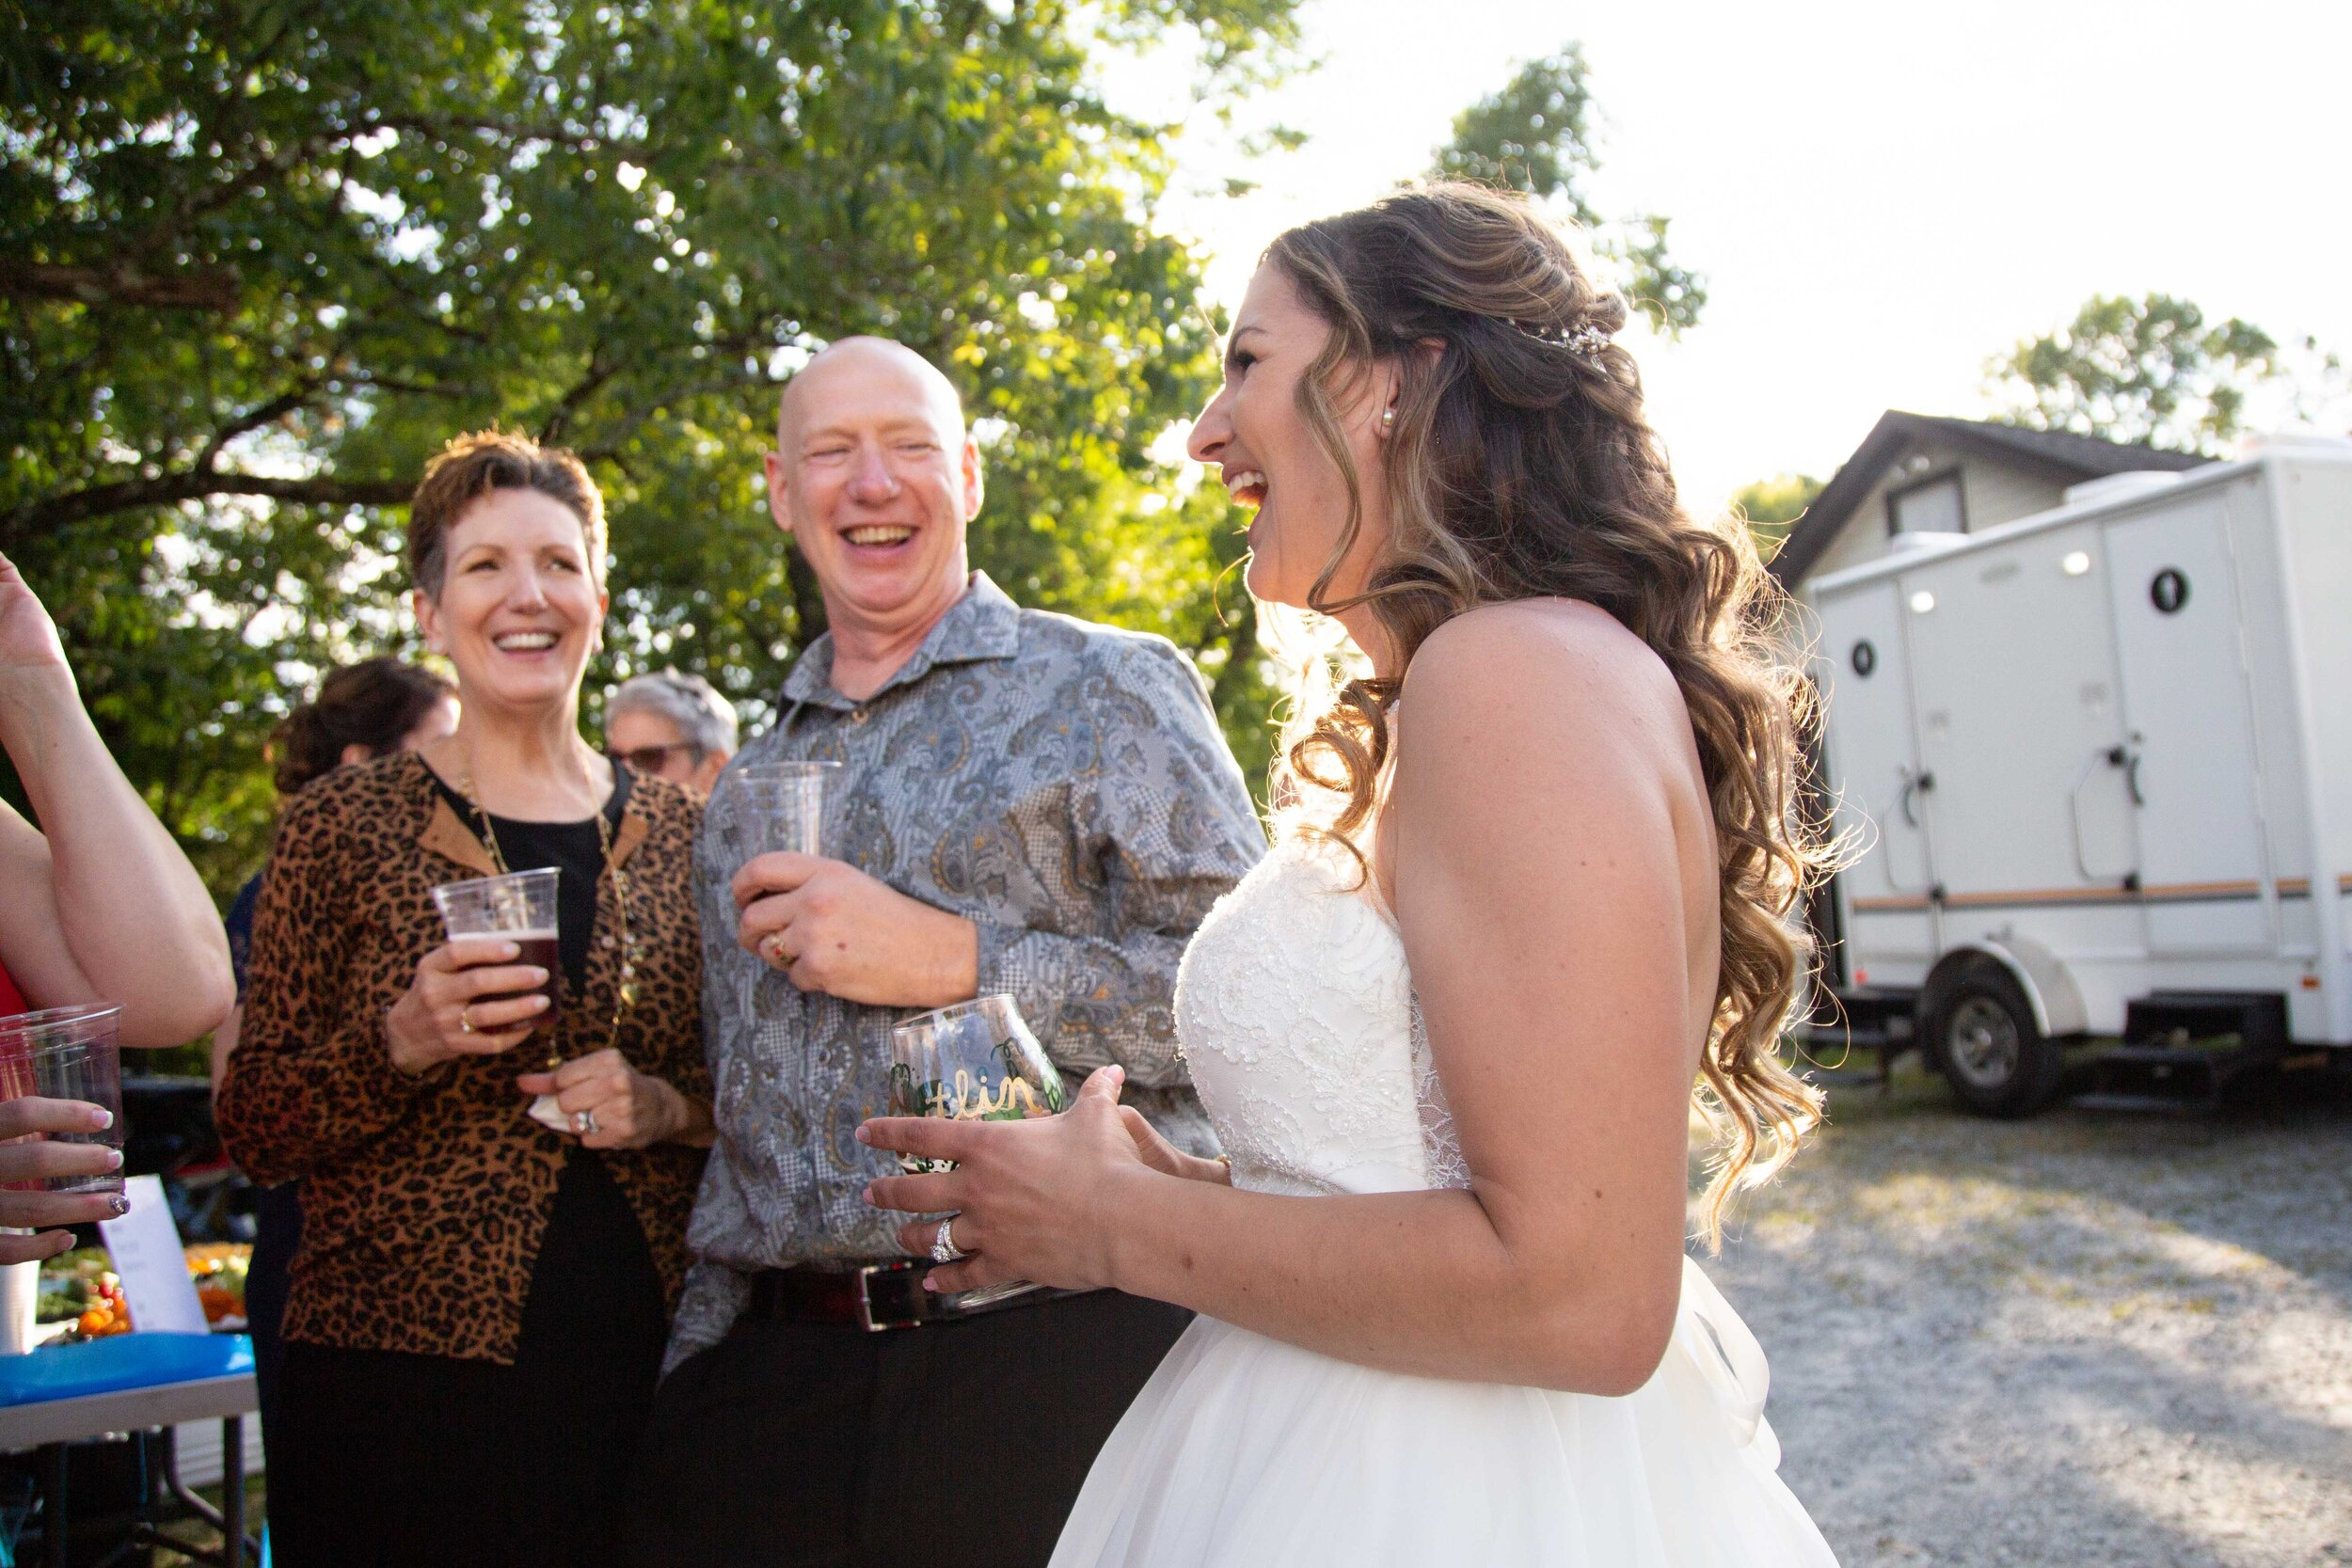 Backyard Homebrew Wedding in Branchville NJ by Dan Schenker Photography-43.jpg